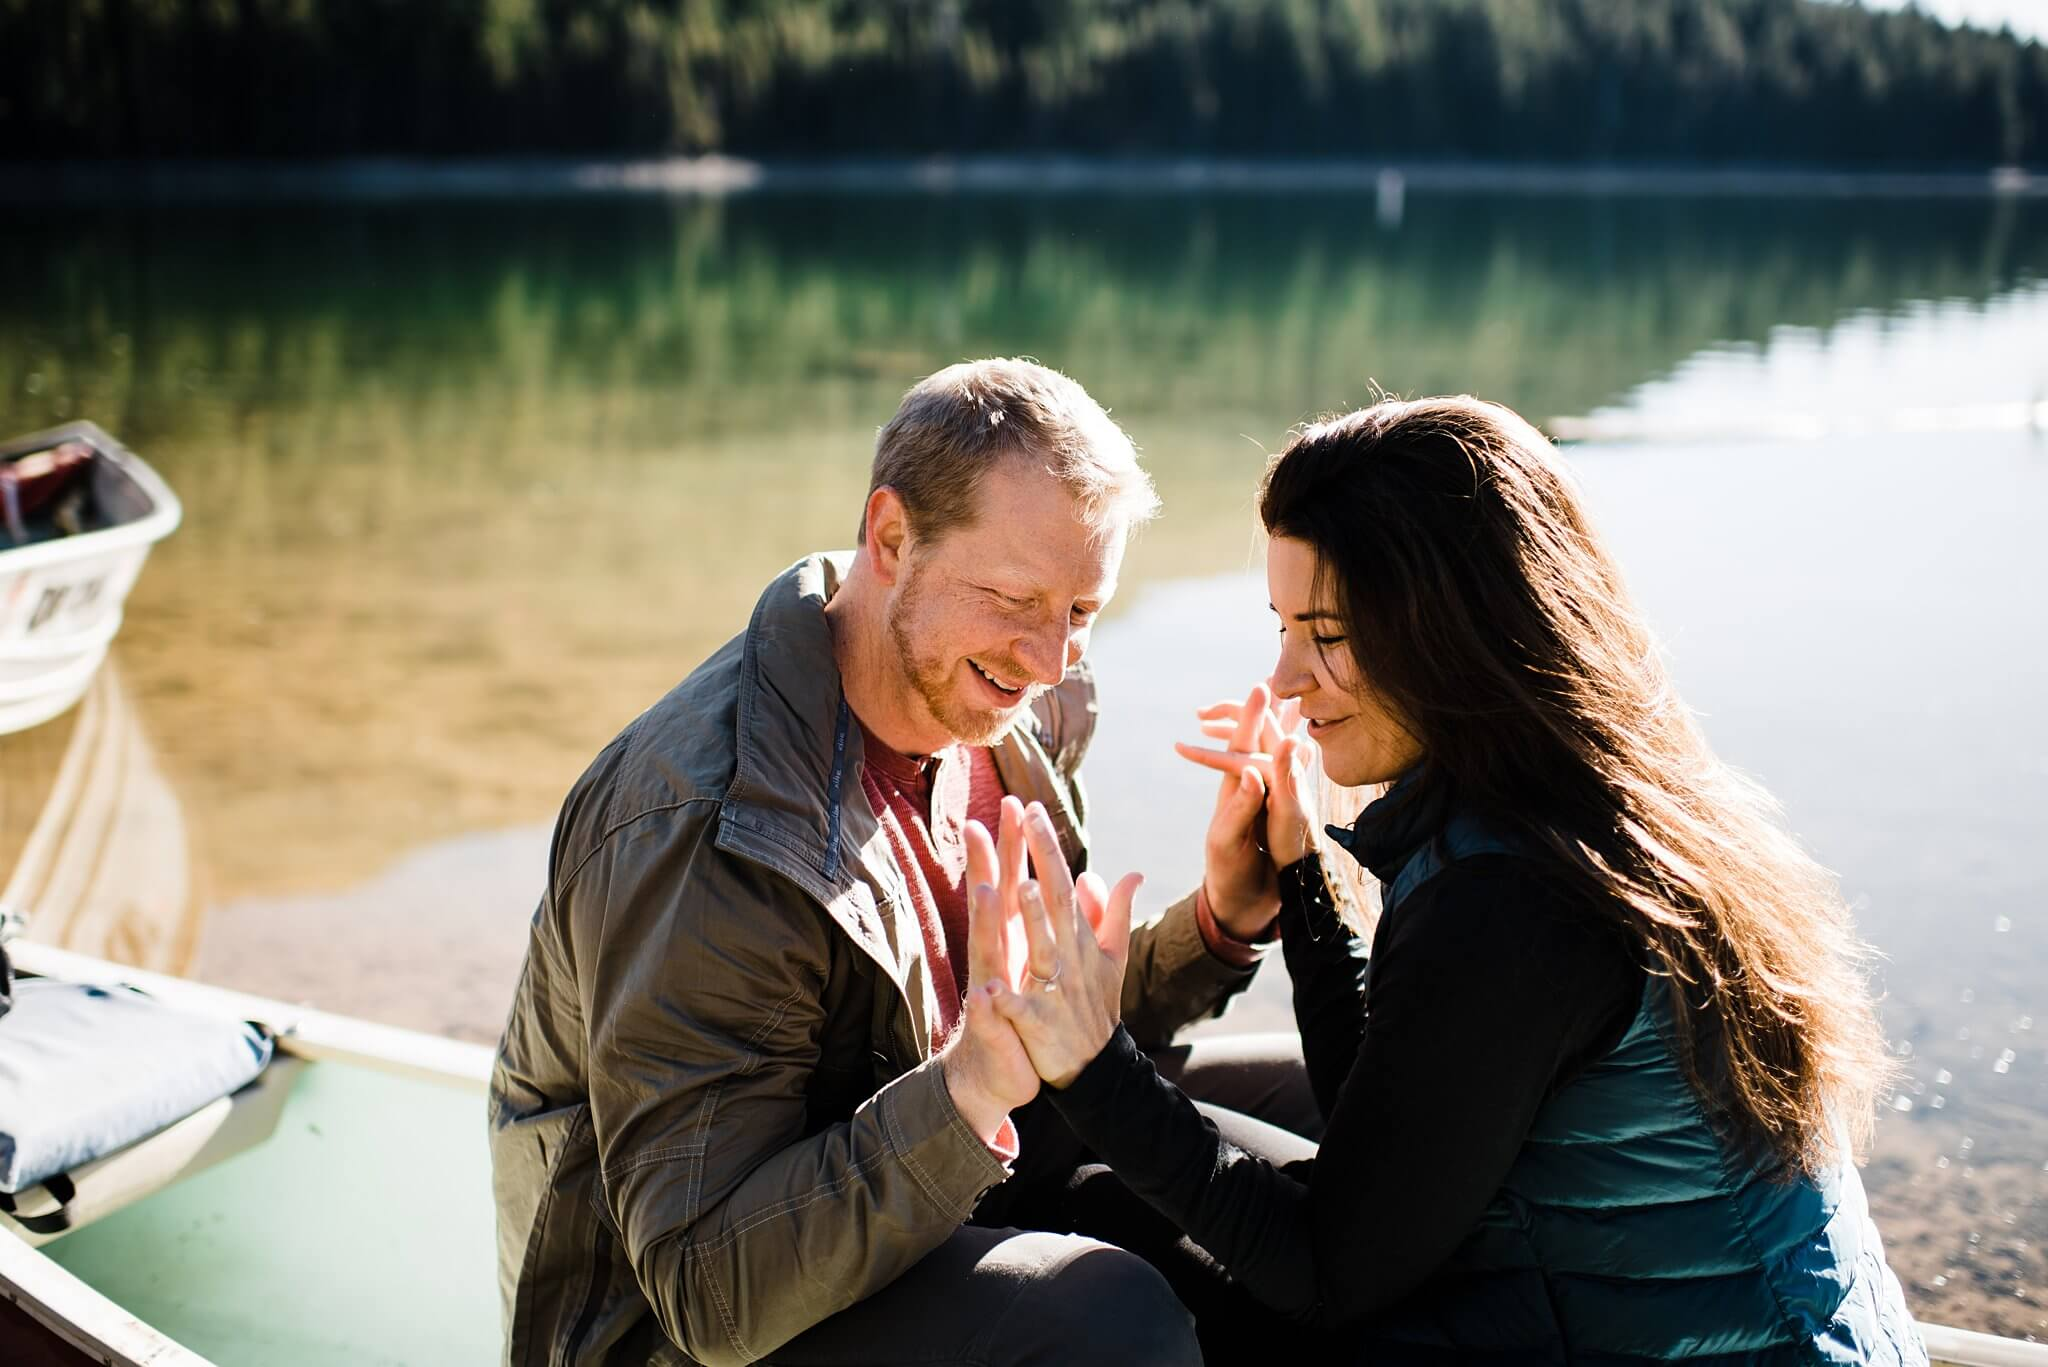 Canoe-Lake-Adventure-Engagement-Session-Oregon-Lemolo-S-Photography_0019.jpg